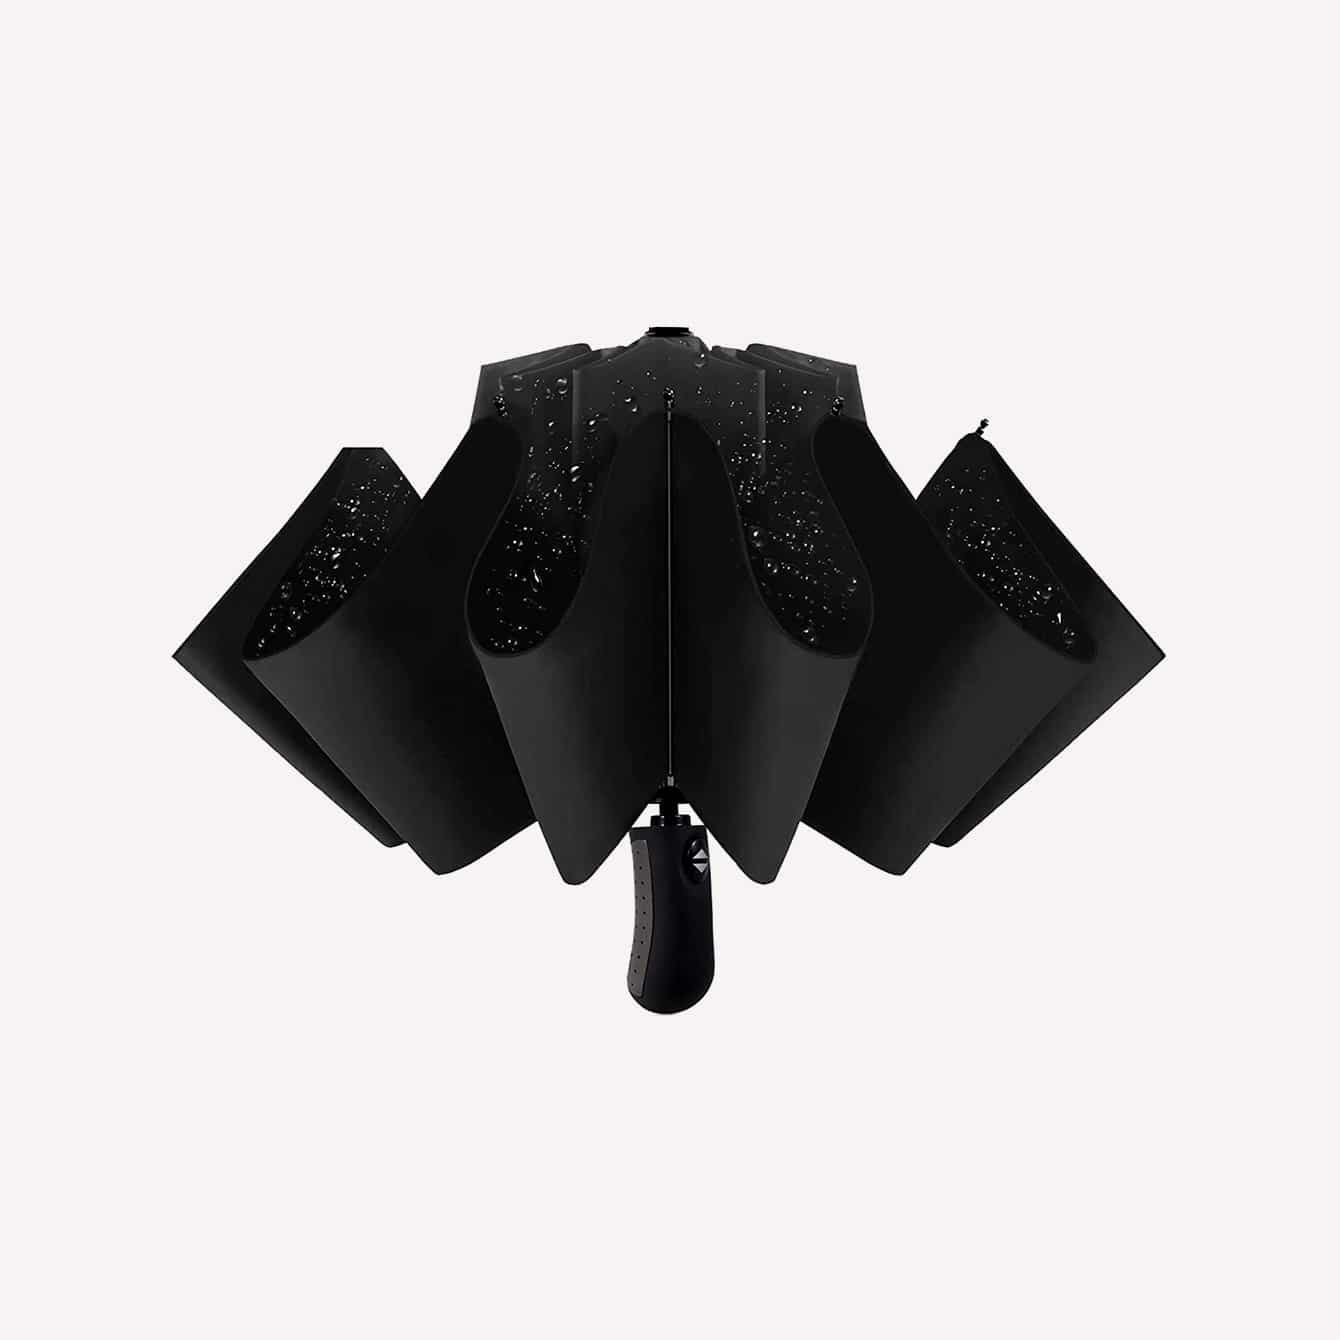 Compact Inverted Umbrella from Adoric Life